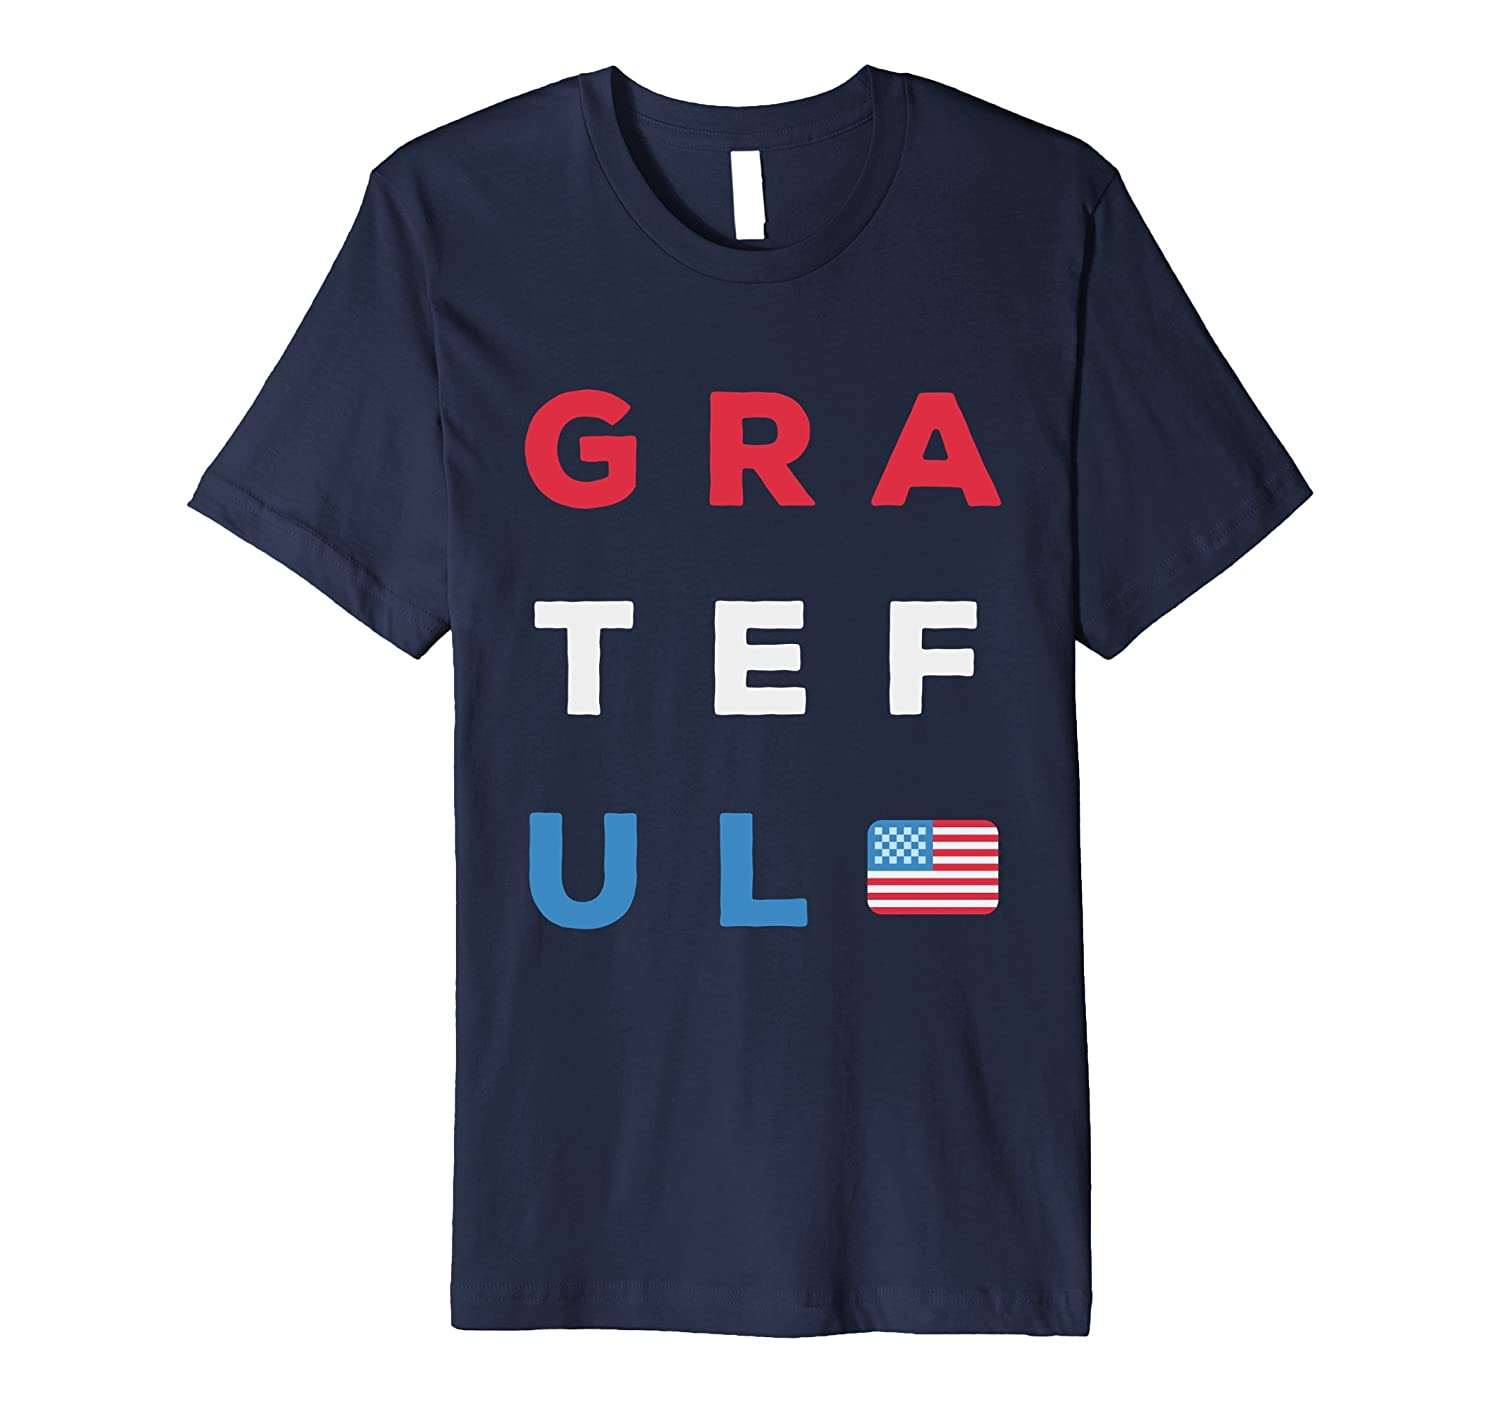 4th of July Shirts - Grateful for America Shirt-Vaci